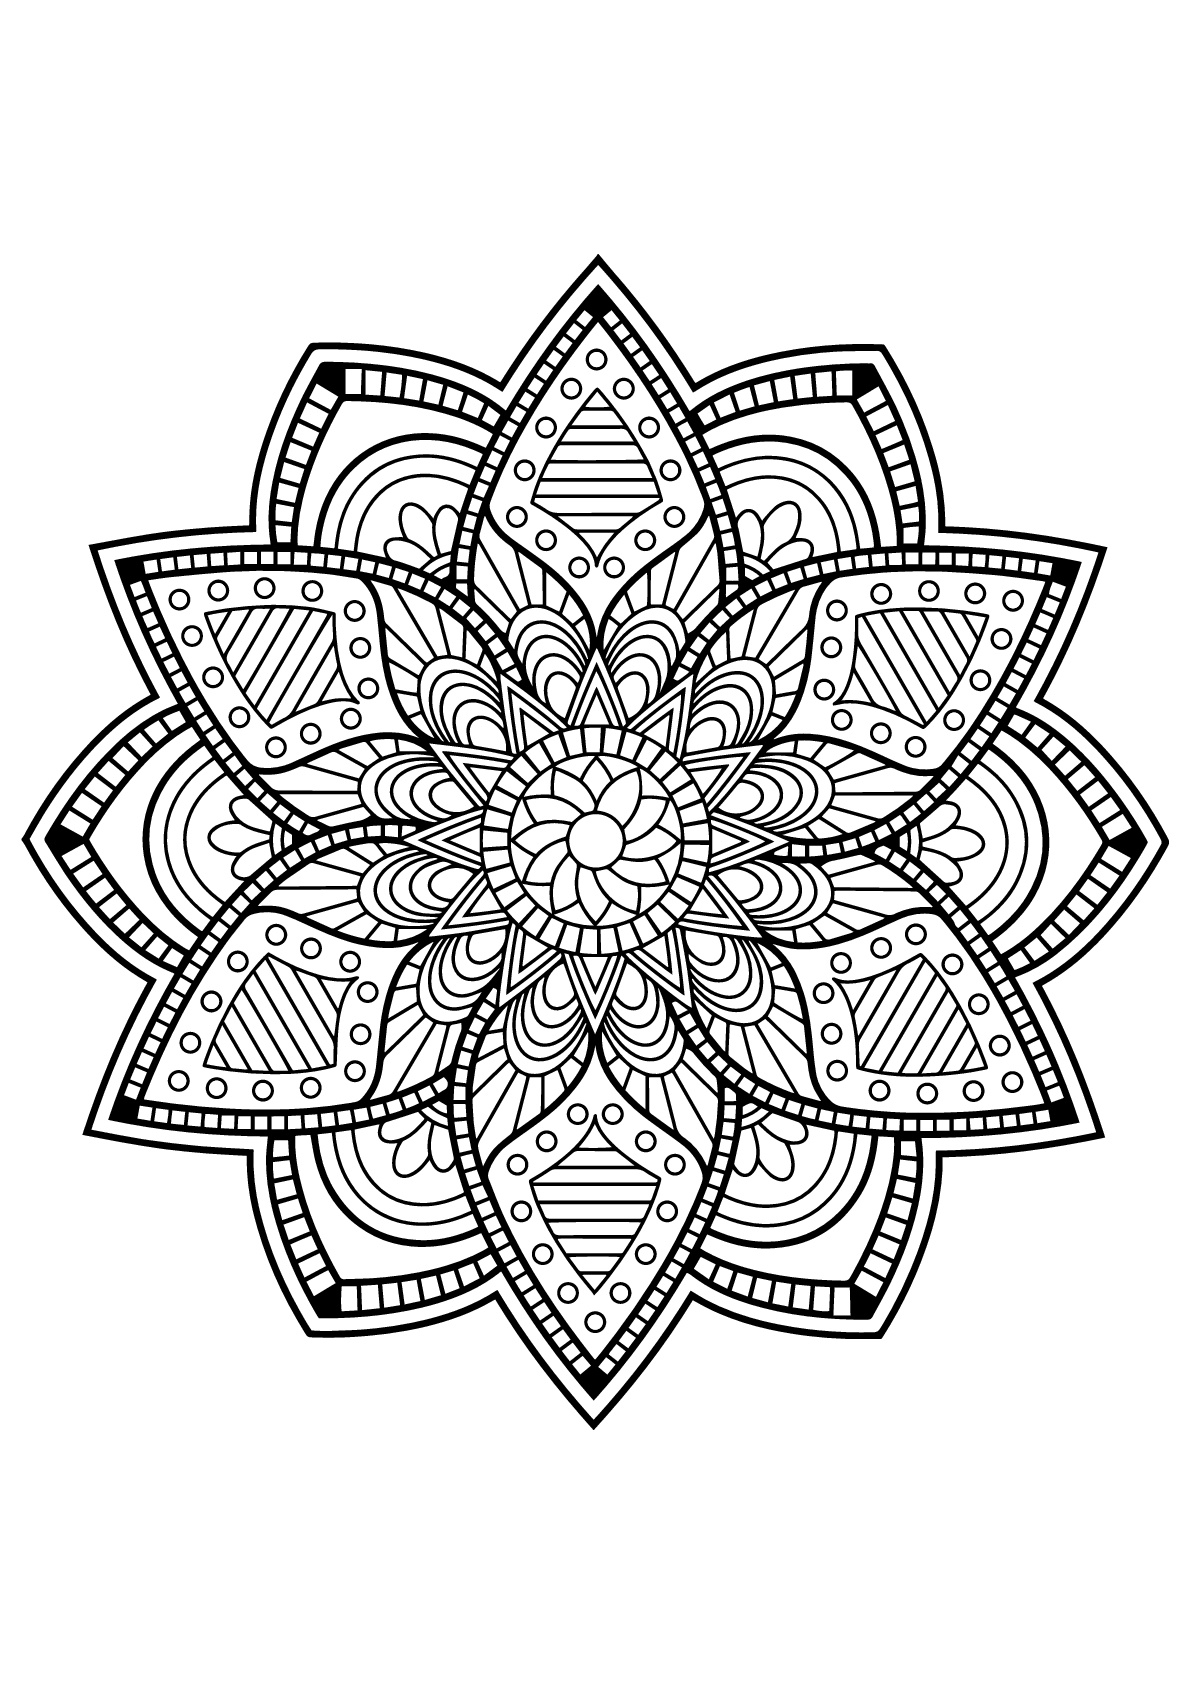 free mandala coloring pages for adults free mandala coloring page coloring adult mandala by mandala for free pages coloring adults